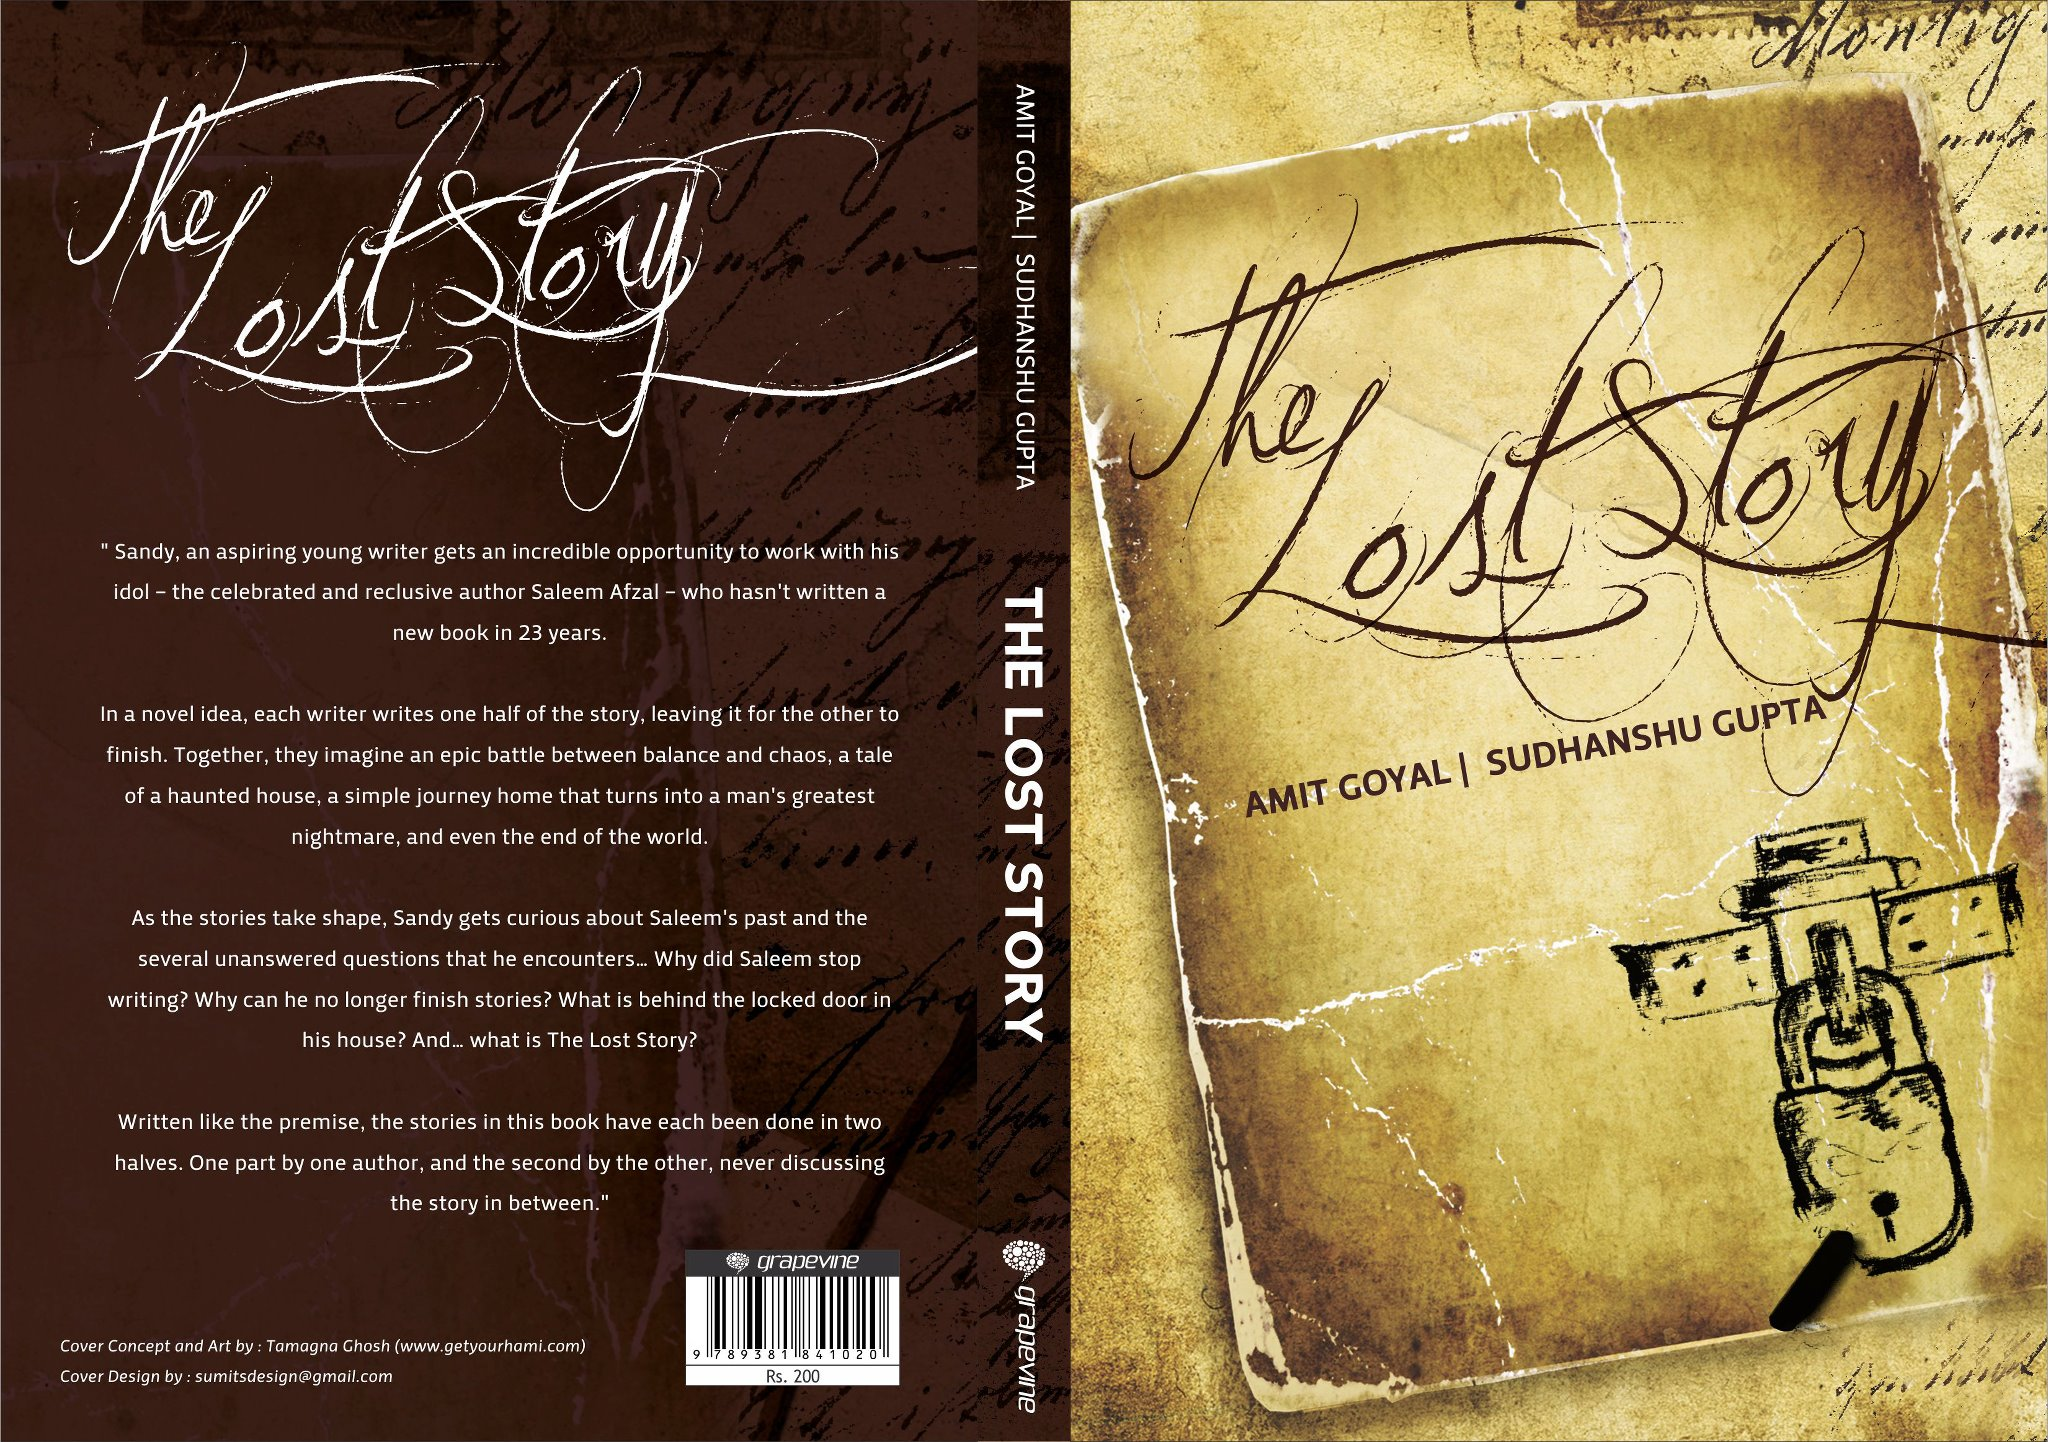 the lost story final cover May 2013 dreamzandclouds